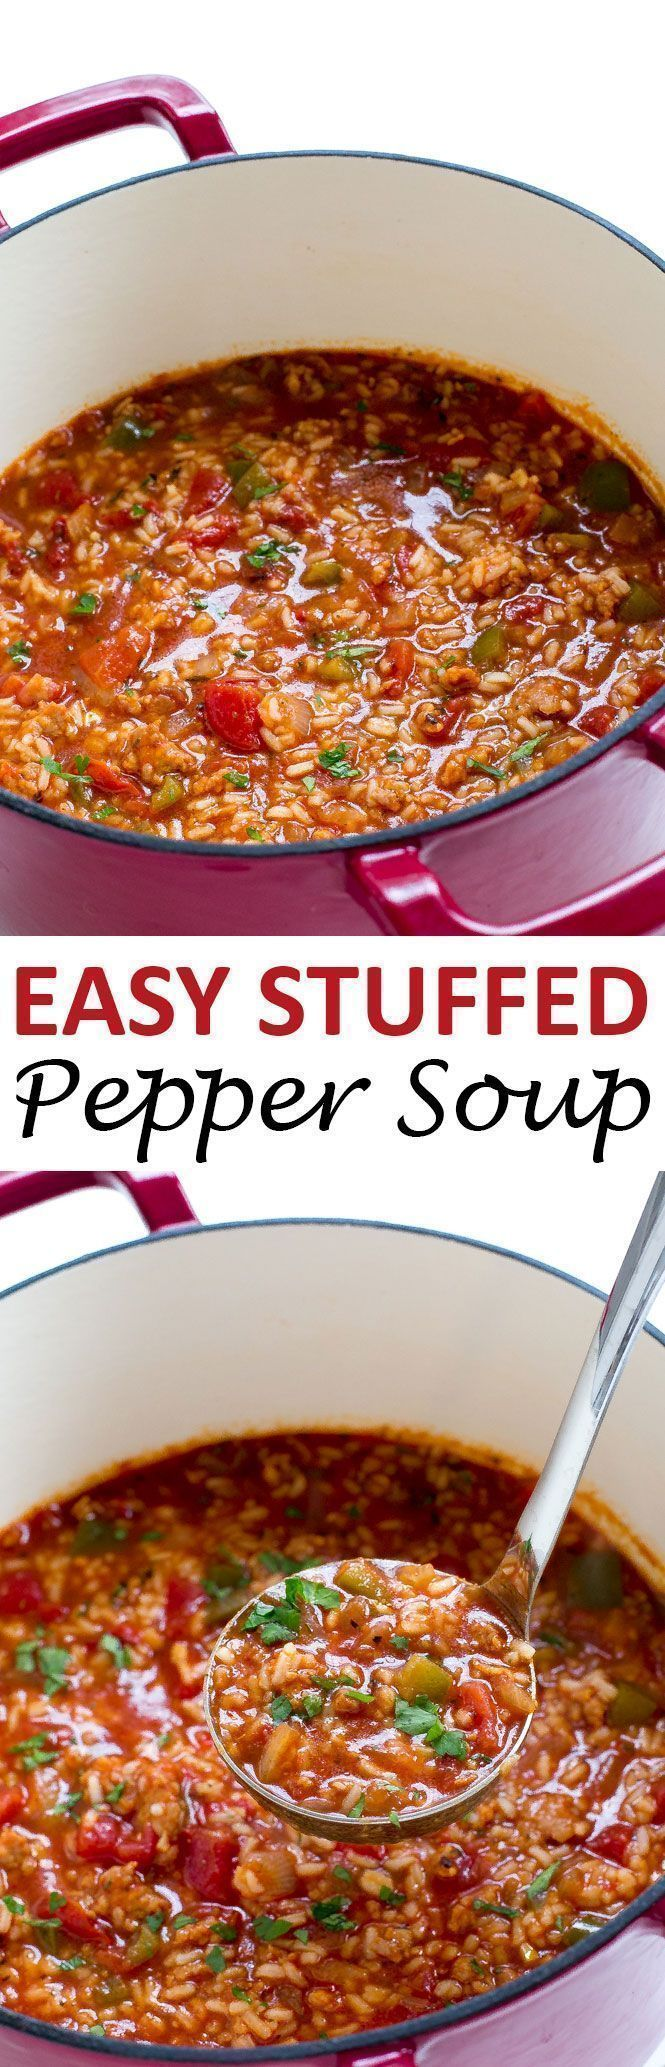 Stuffed Pepper Soup loaded with spicy sausage, bell peppers and rice! Everything you love about a stuffed pepper but in soup form! | http://chefsavvy.com